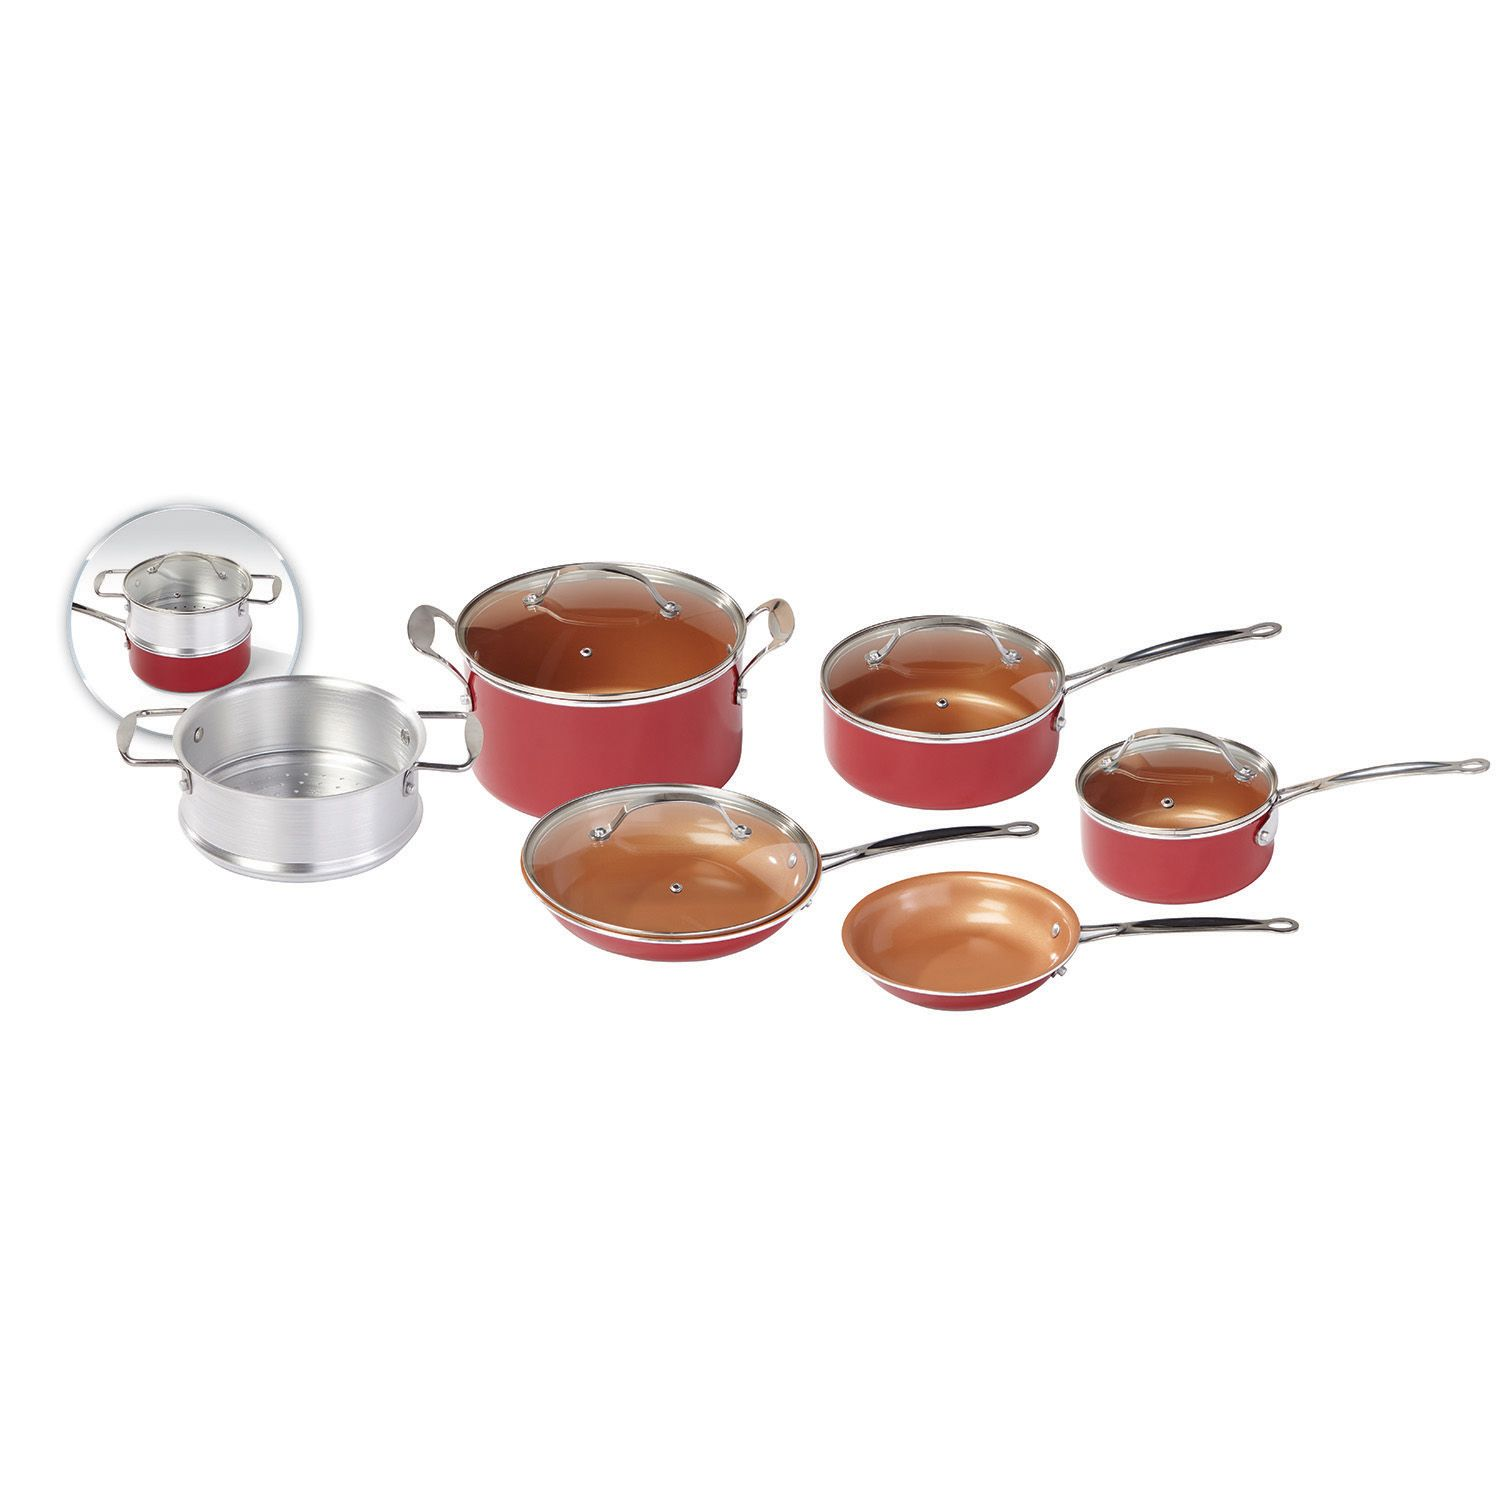 red copper cookware set - Copper Cookware Set